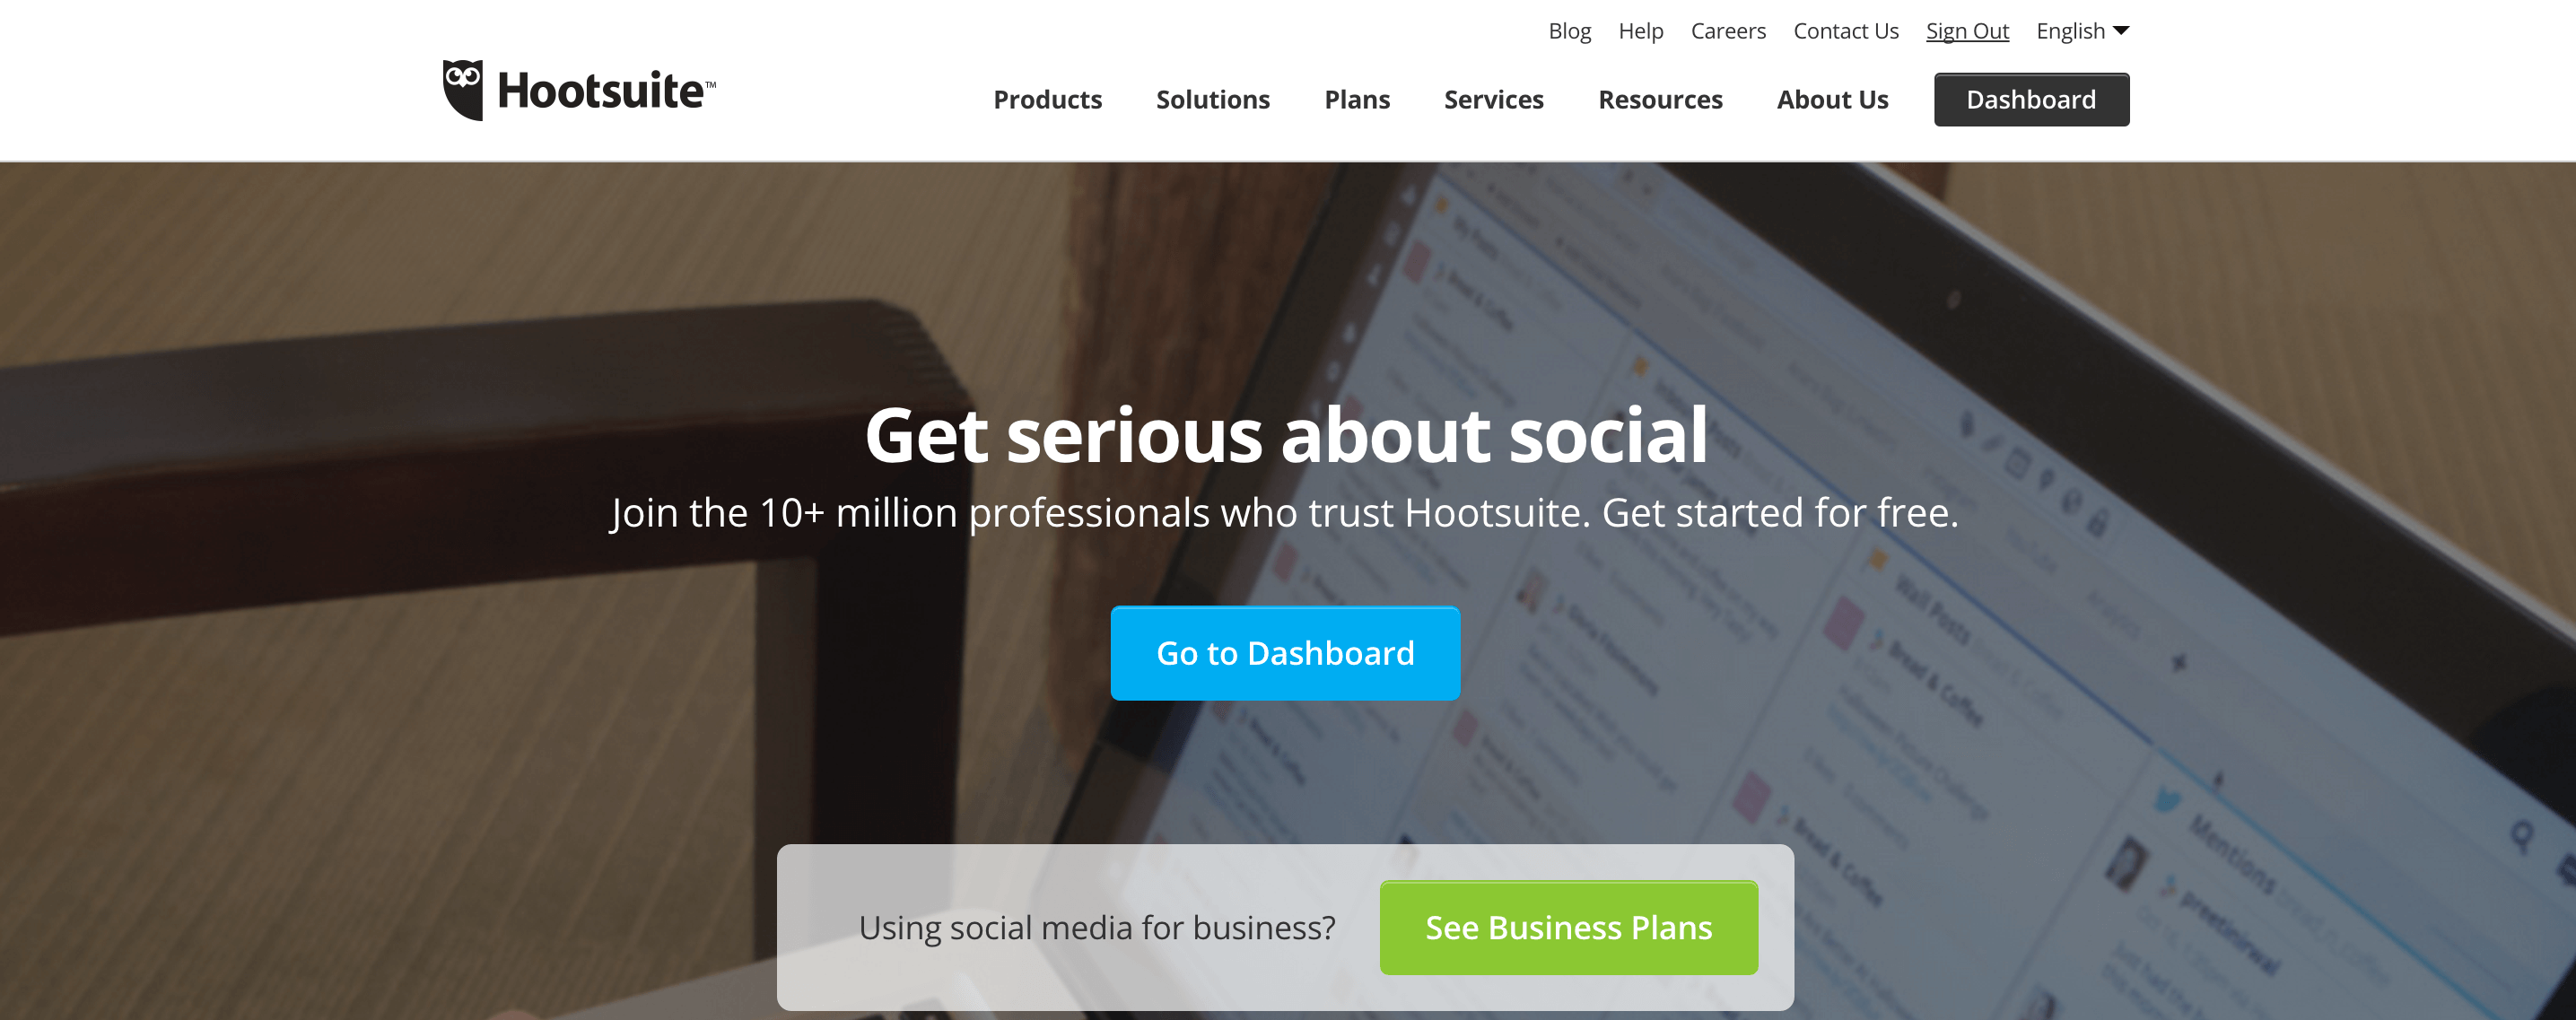 Hootsuite Still isn't Worth the Money